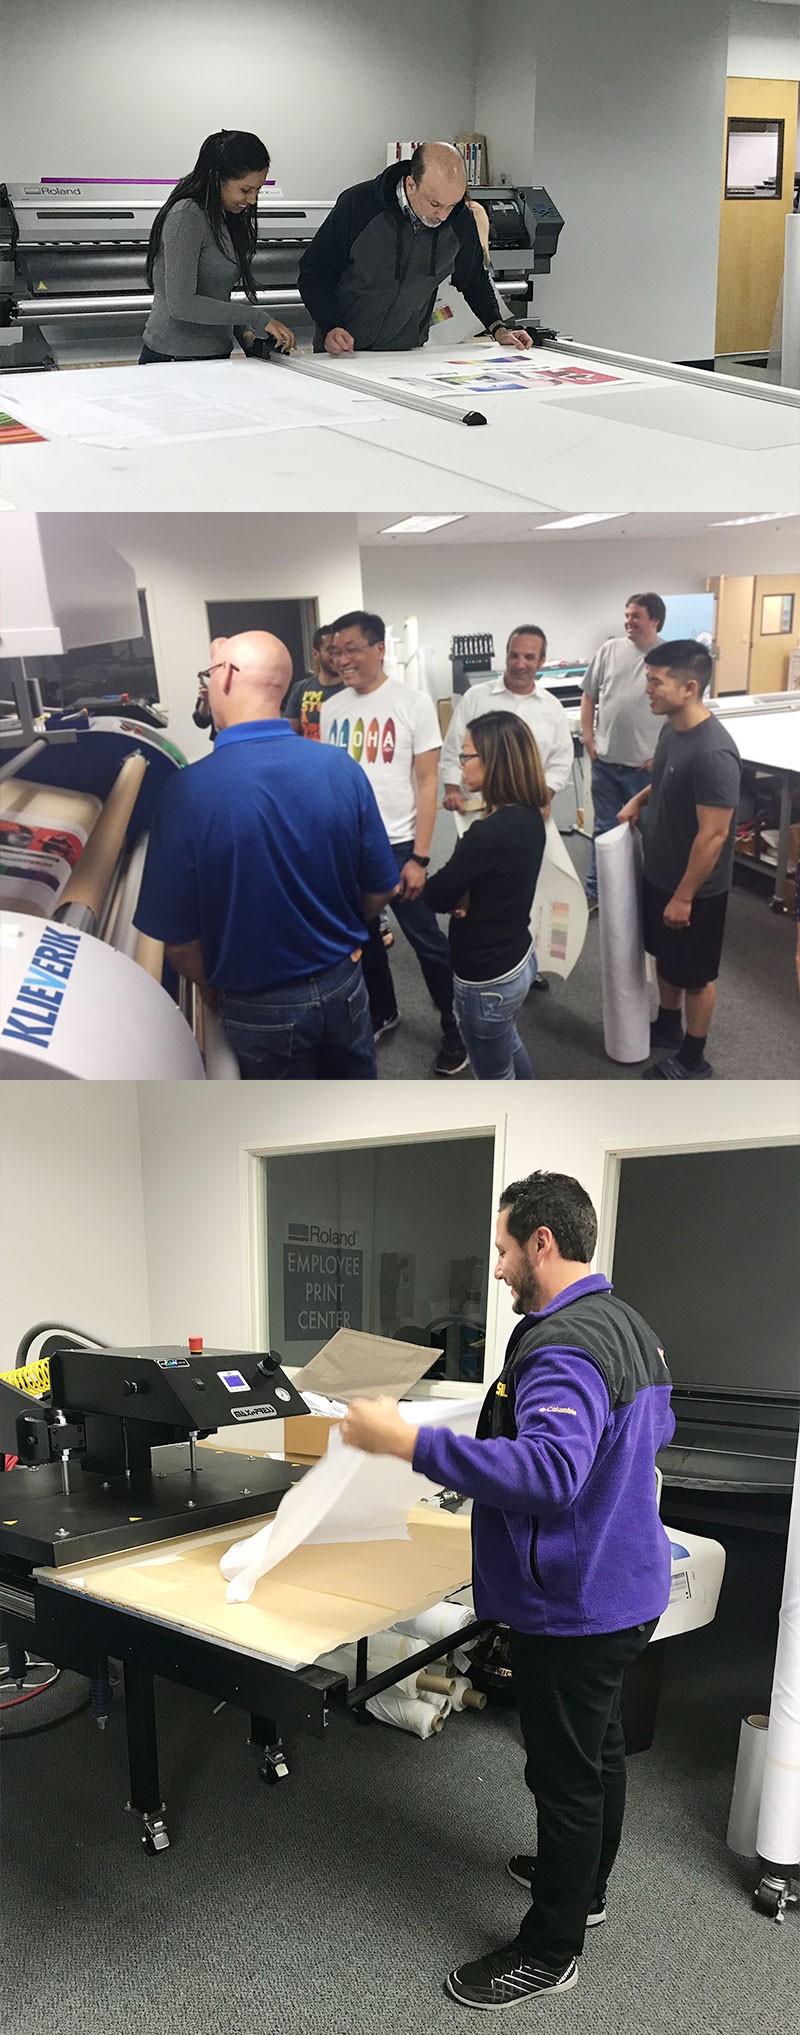 Dye sublimation workshop training